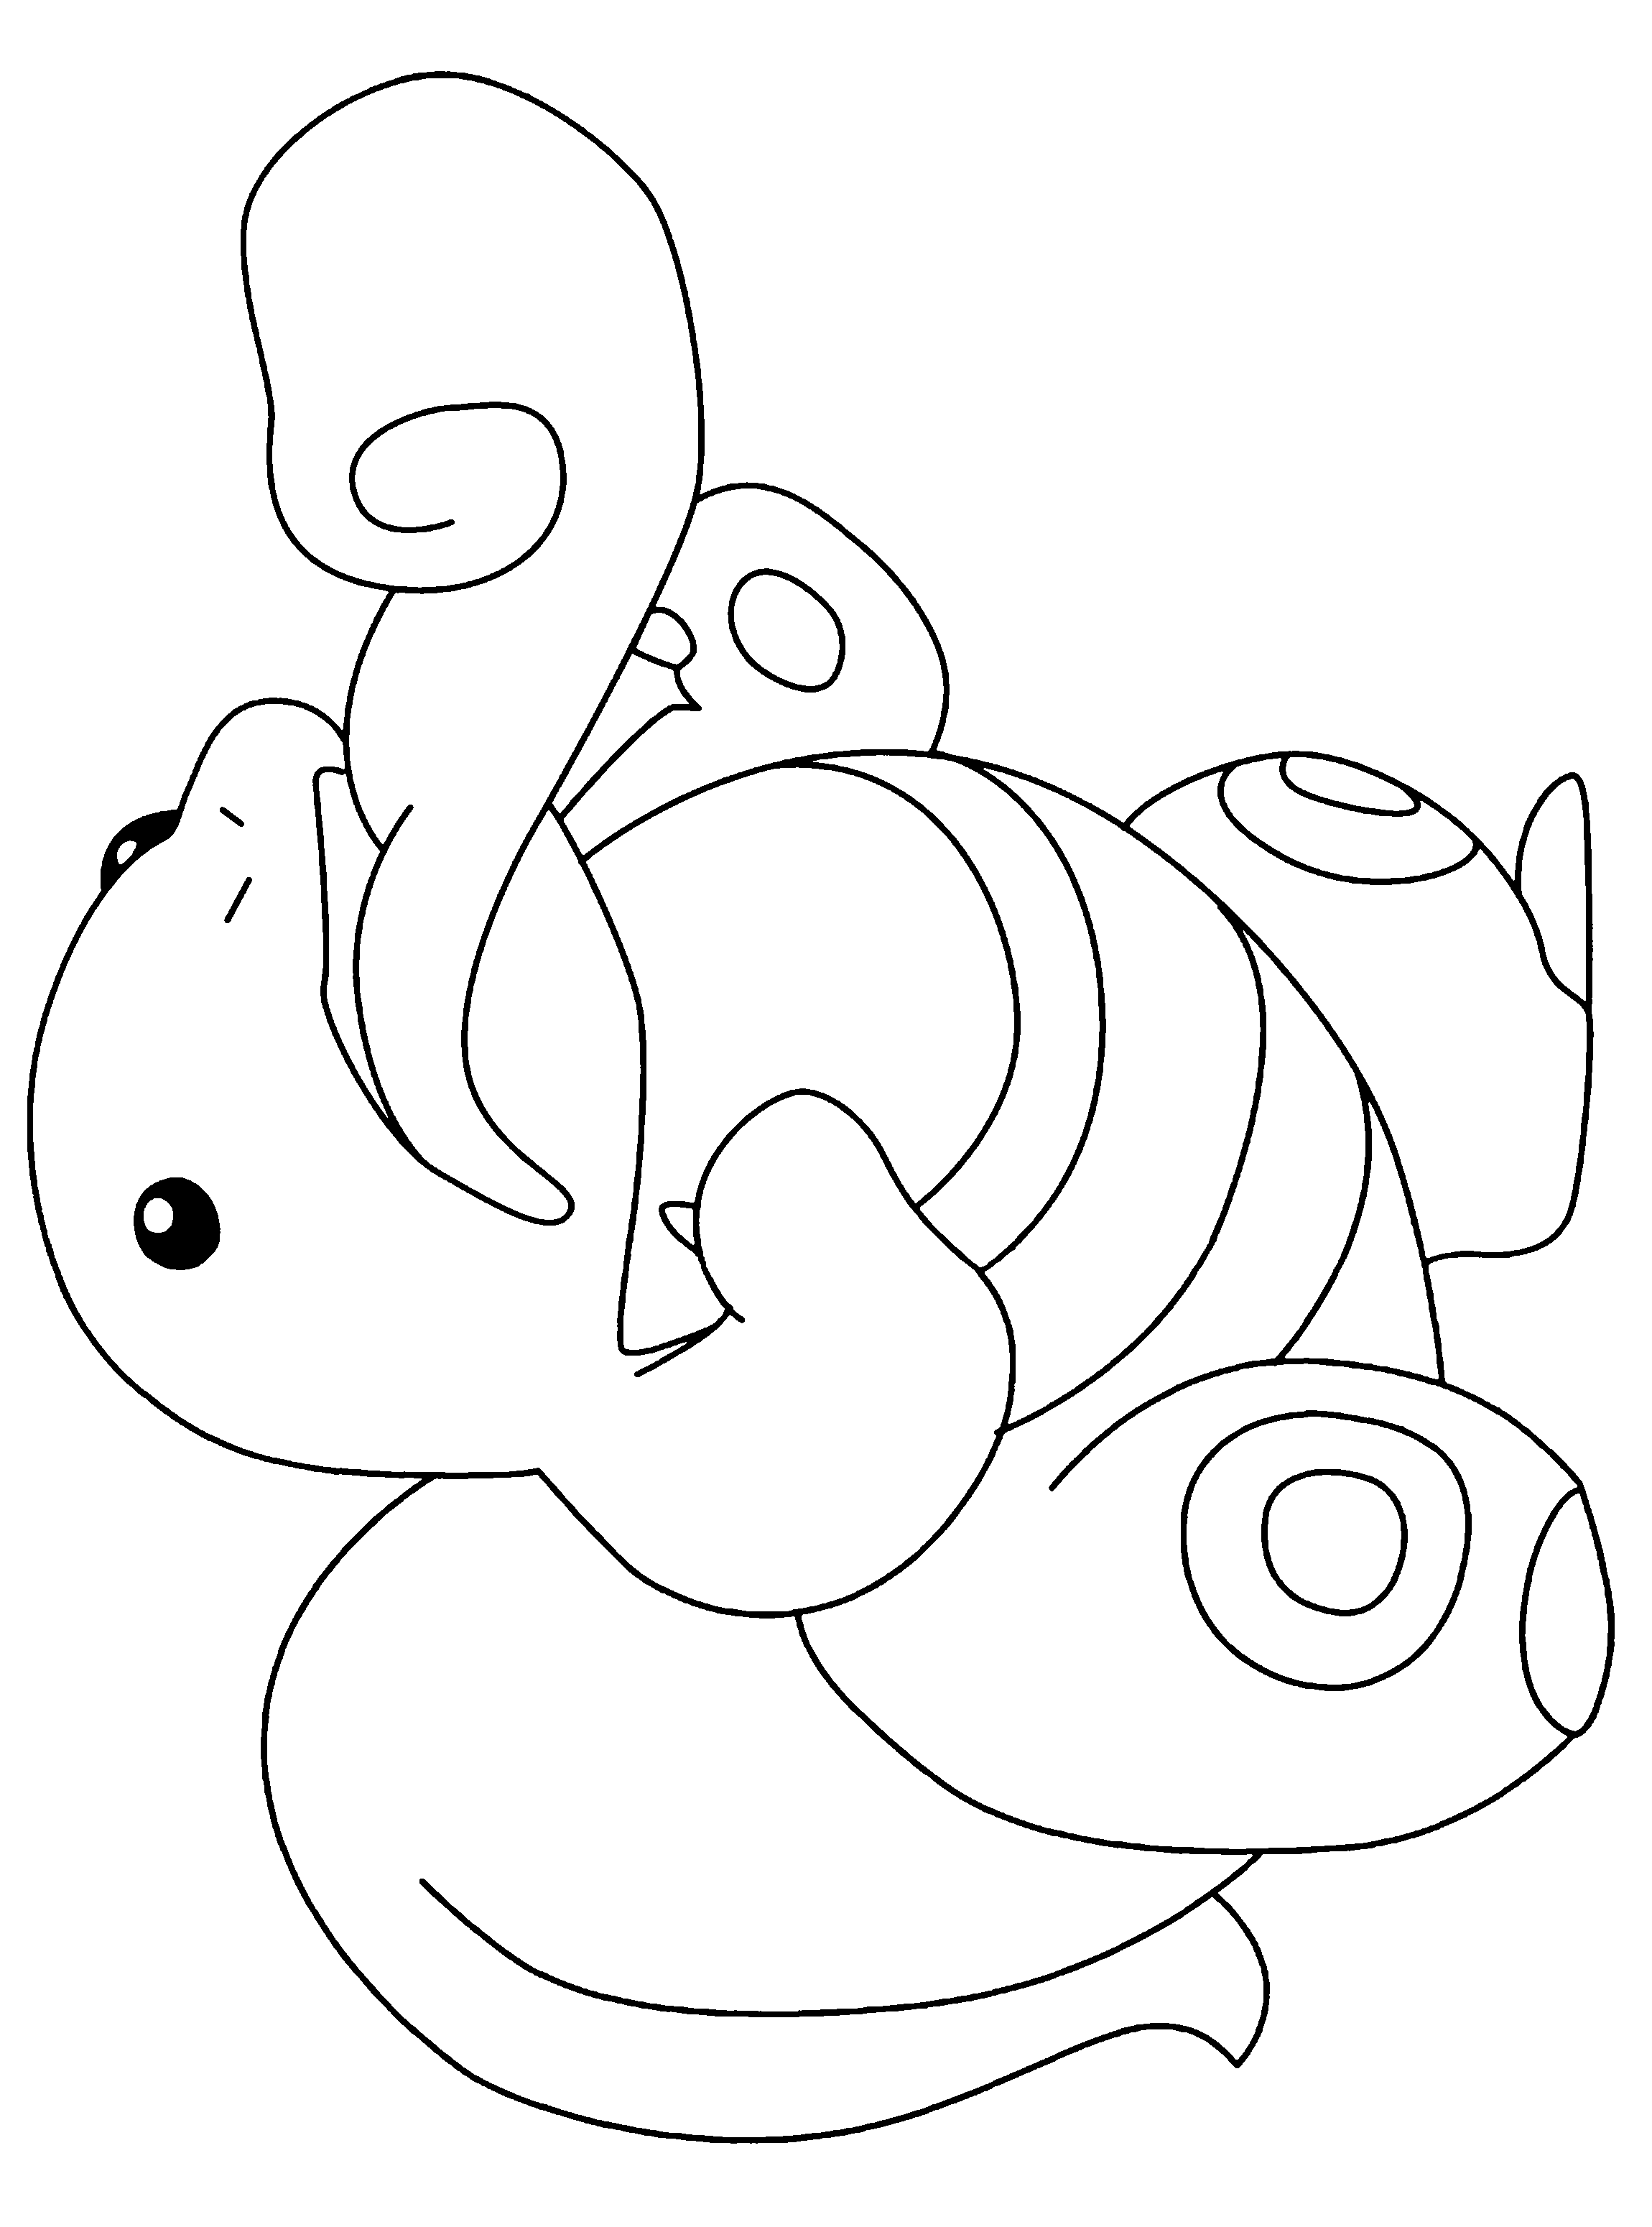 pokemon coloring pages printable coloring pages pokemon coloring pages free and printable coloring printable pages pokemon